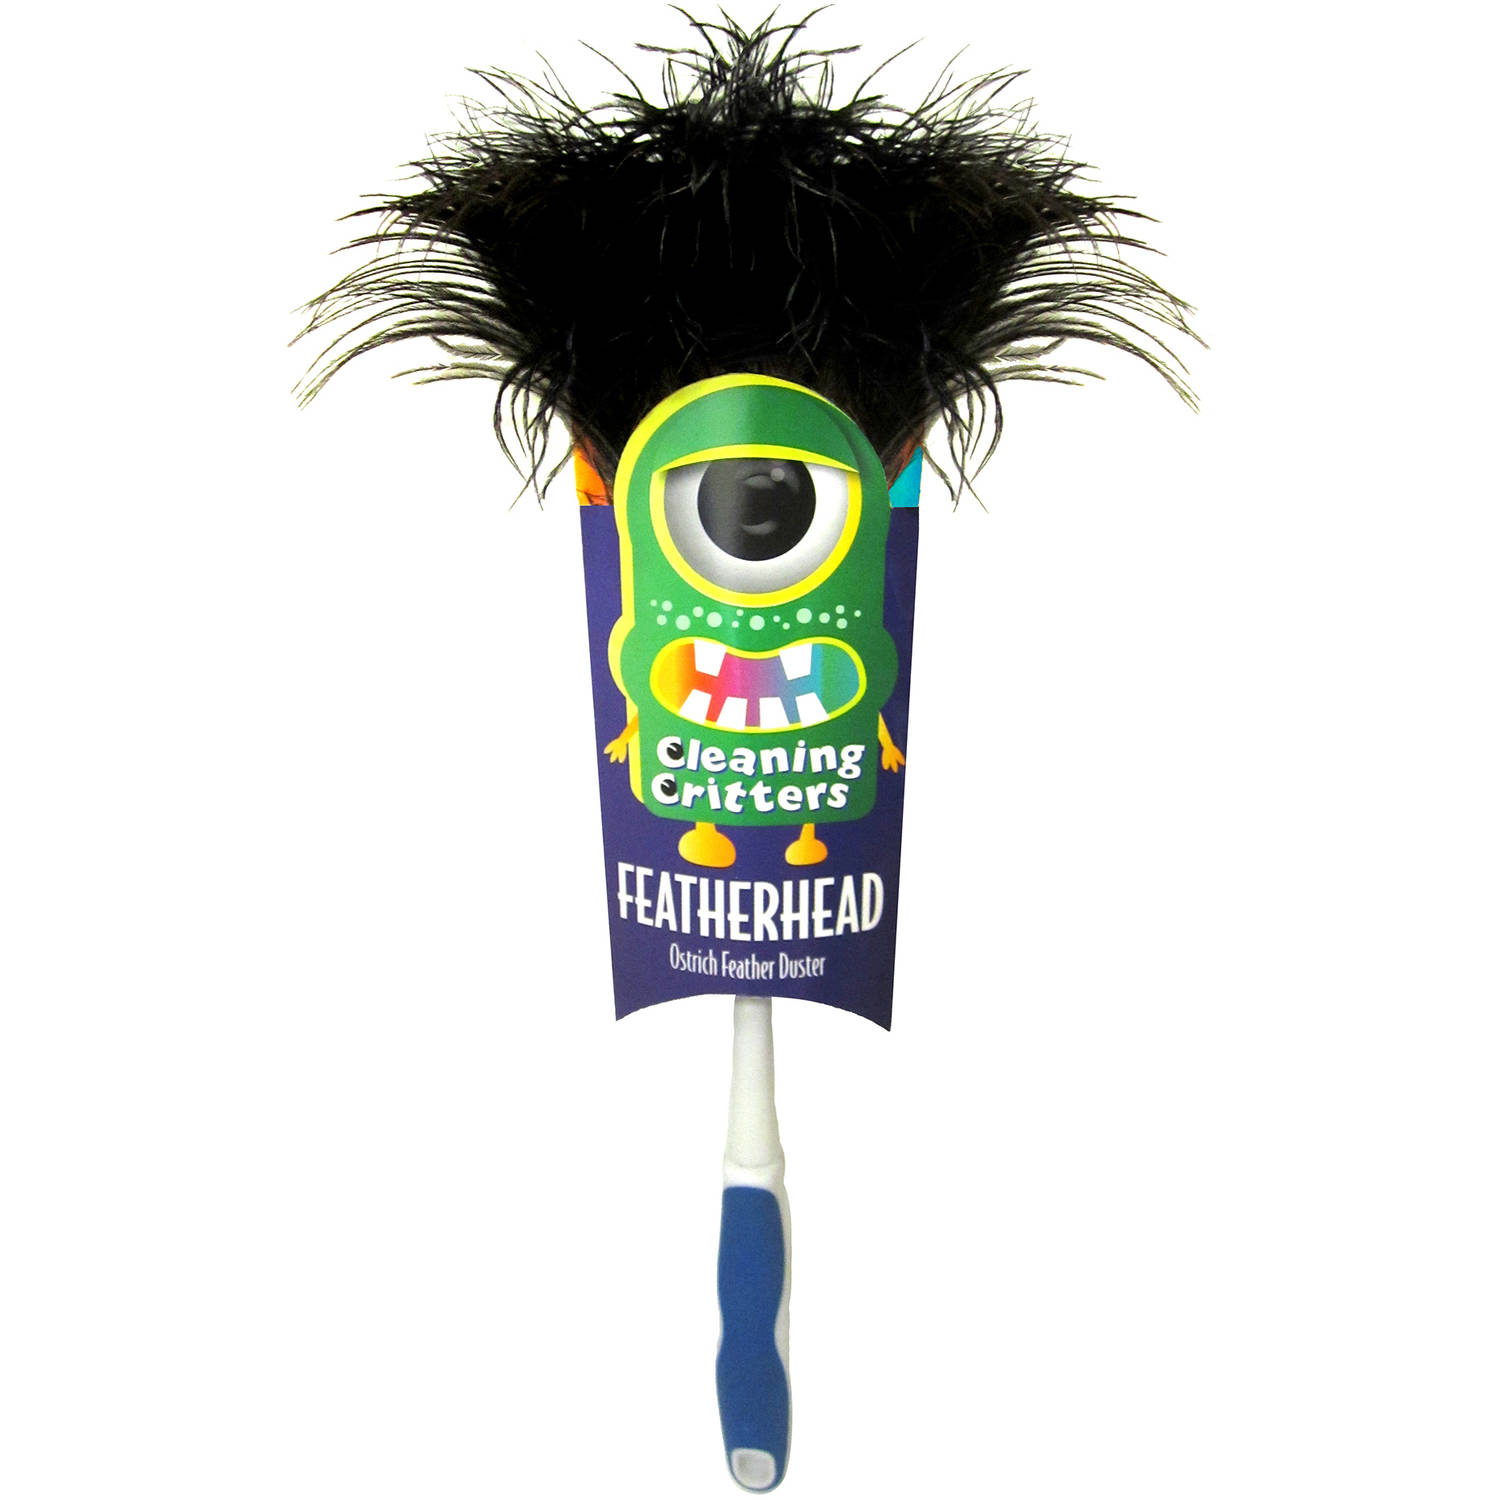 Ettore Cleaning Critters Featherhead Ostrich Feather Duster, 32026